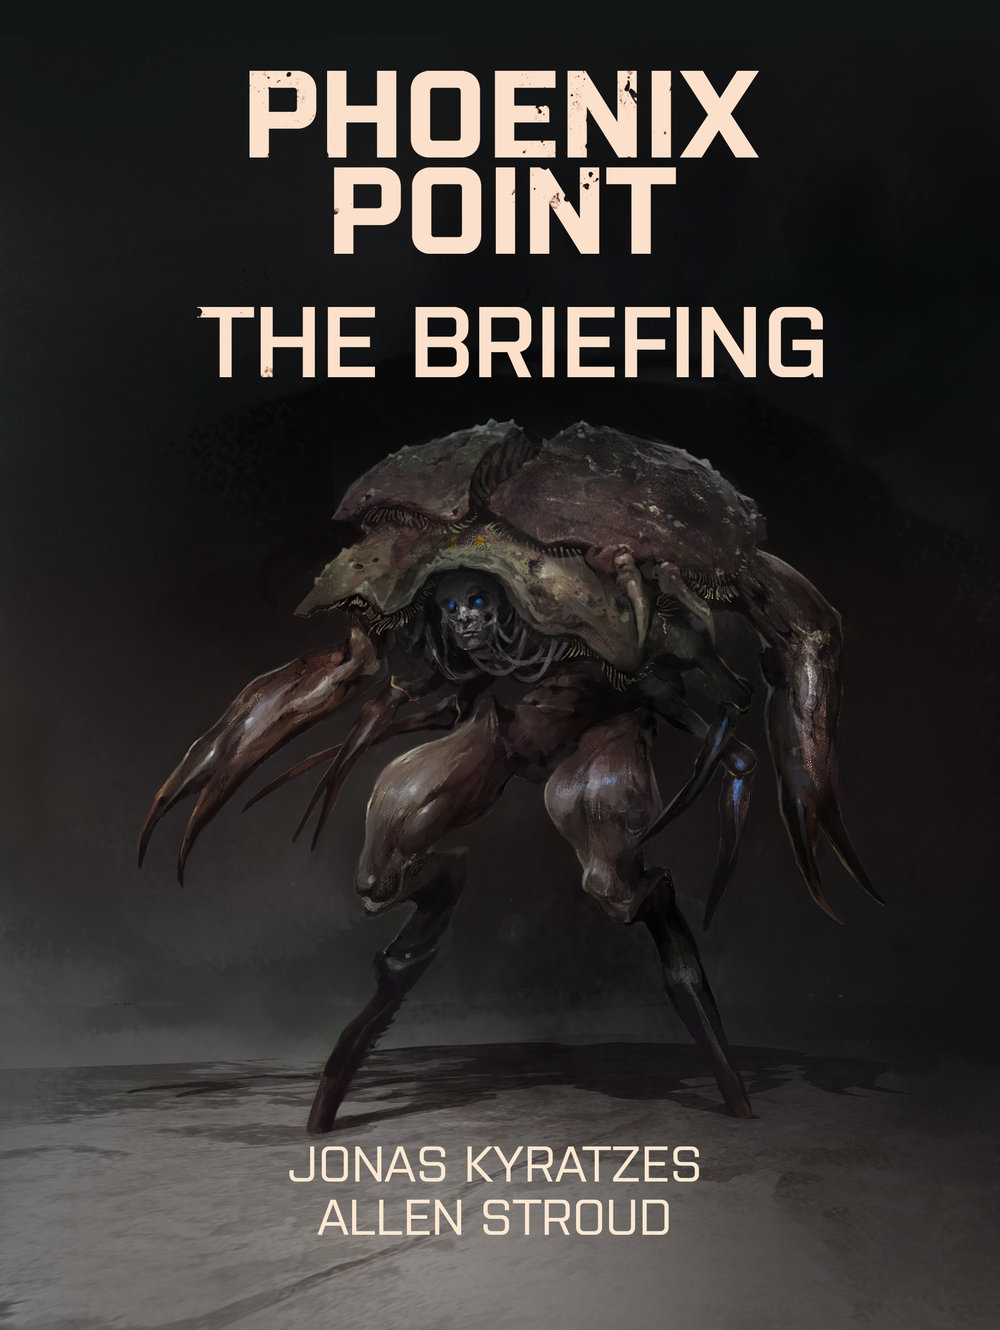 The-Briefing-iBooks.jpg